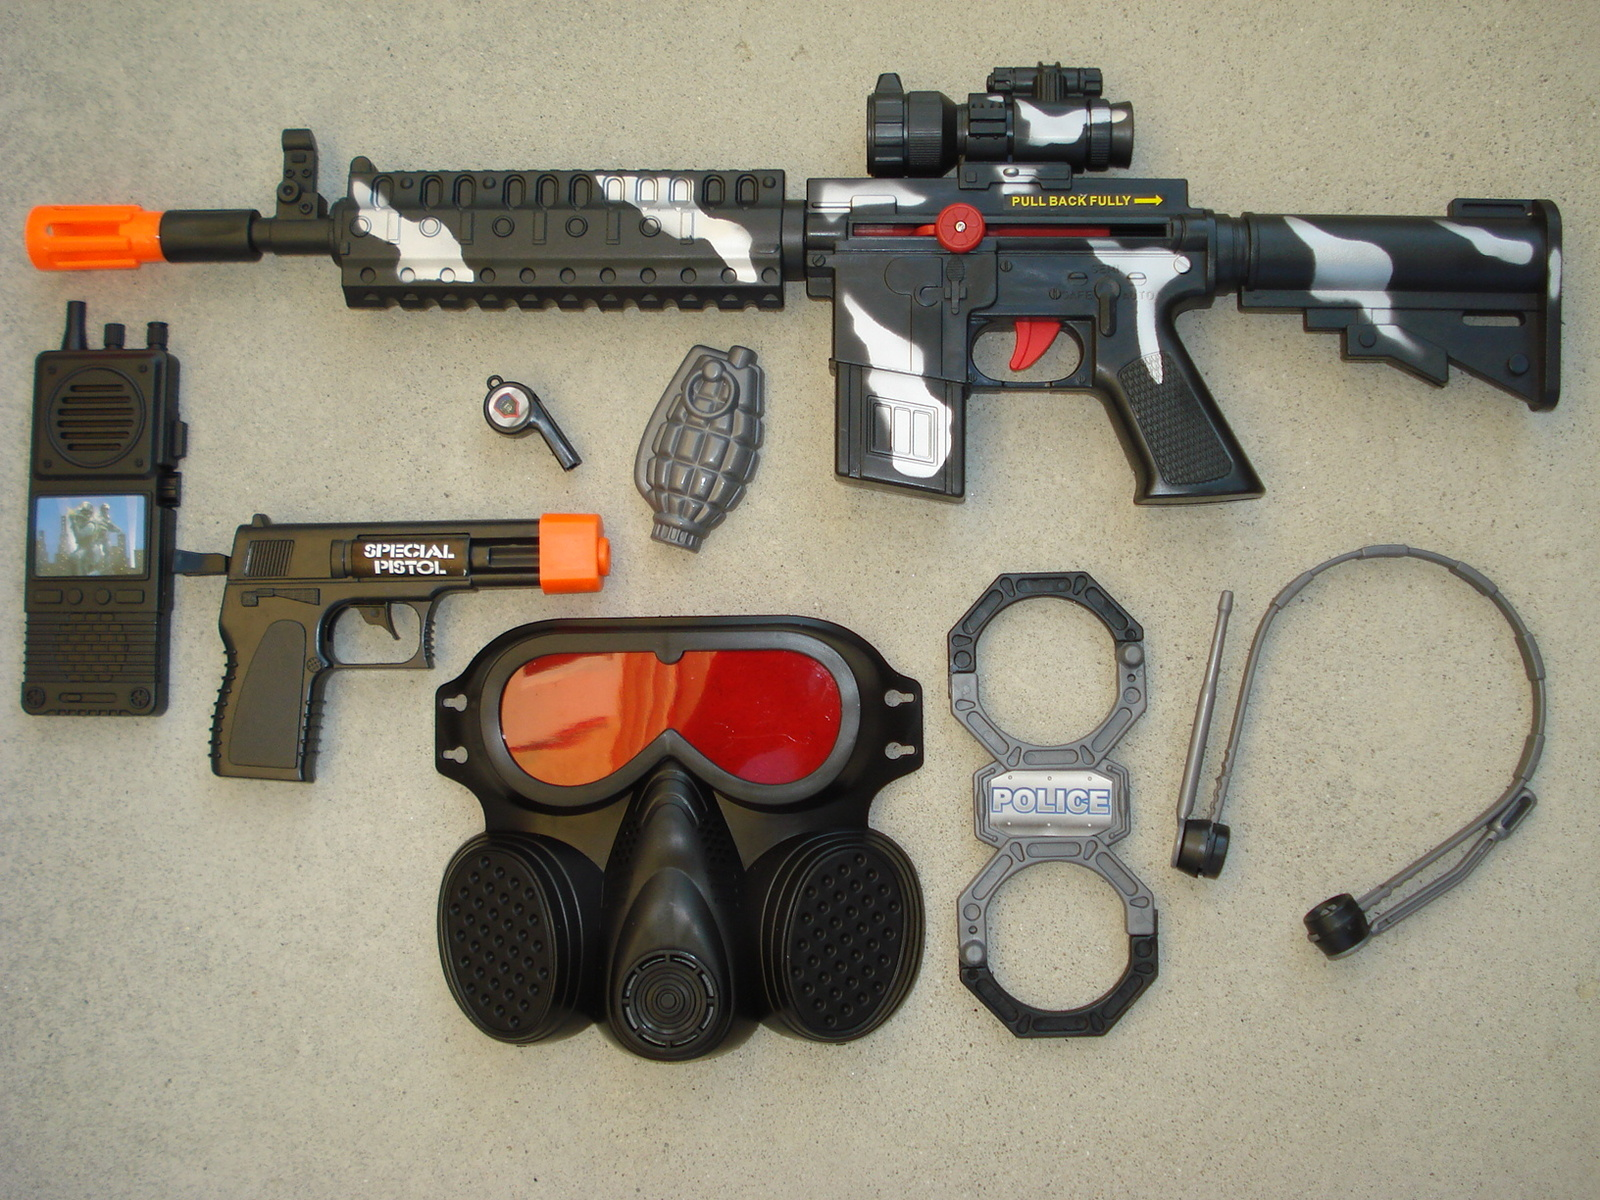 M16 SWAT Police Toy Gun Play Set with M16 and 25 similar items